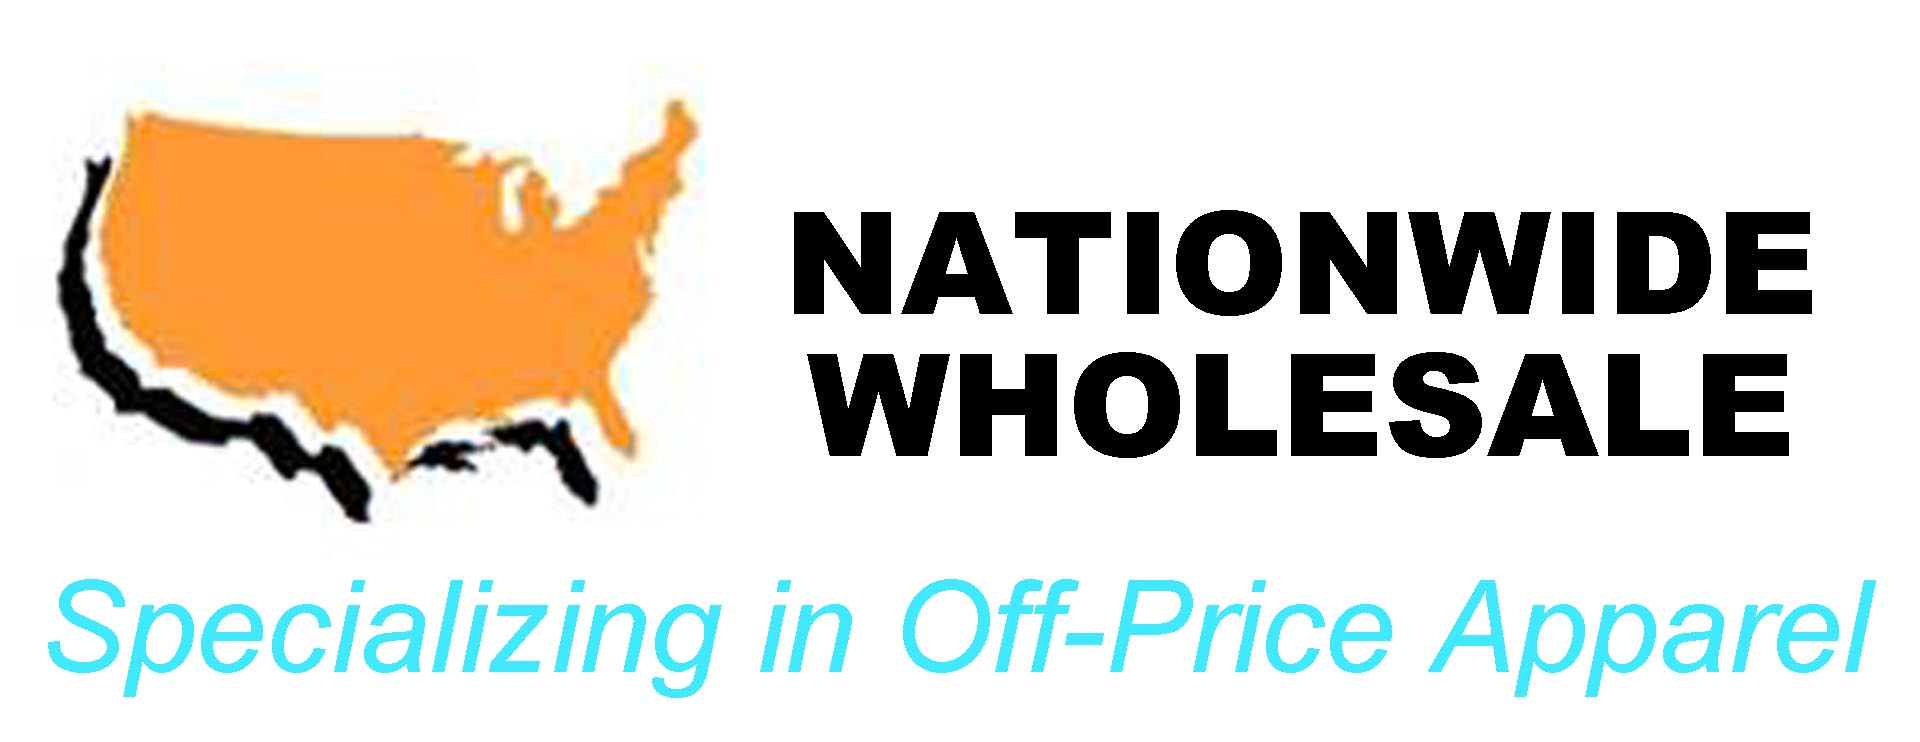 Avi Nationwide Wholesale